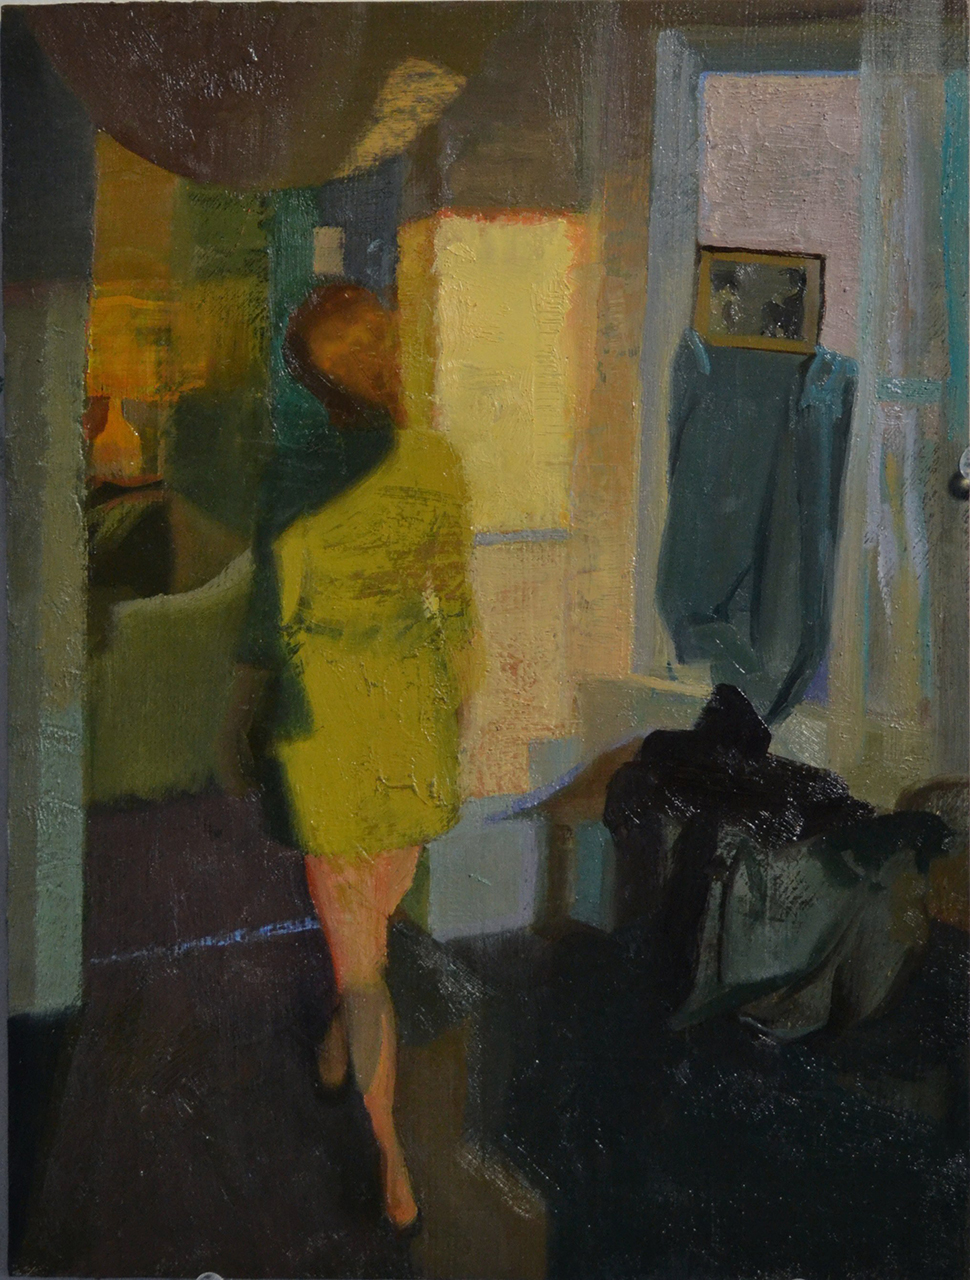 Emil Robinson, Catherine in Green, 2012-13 (courtesy of the artist)